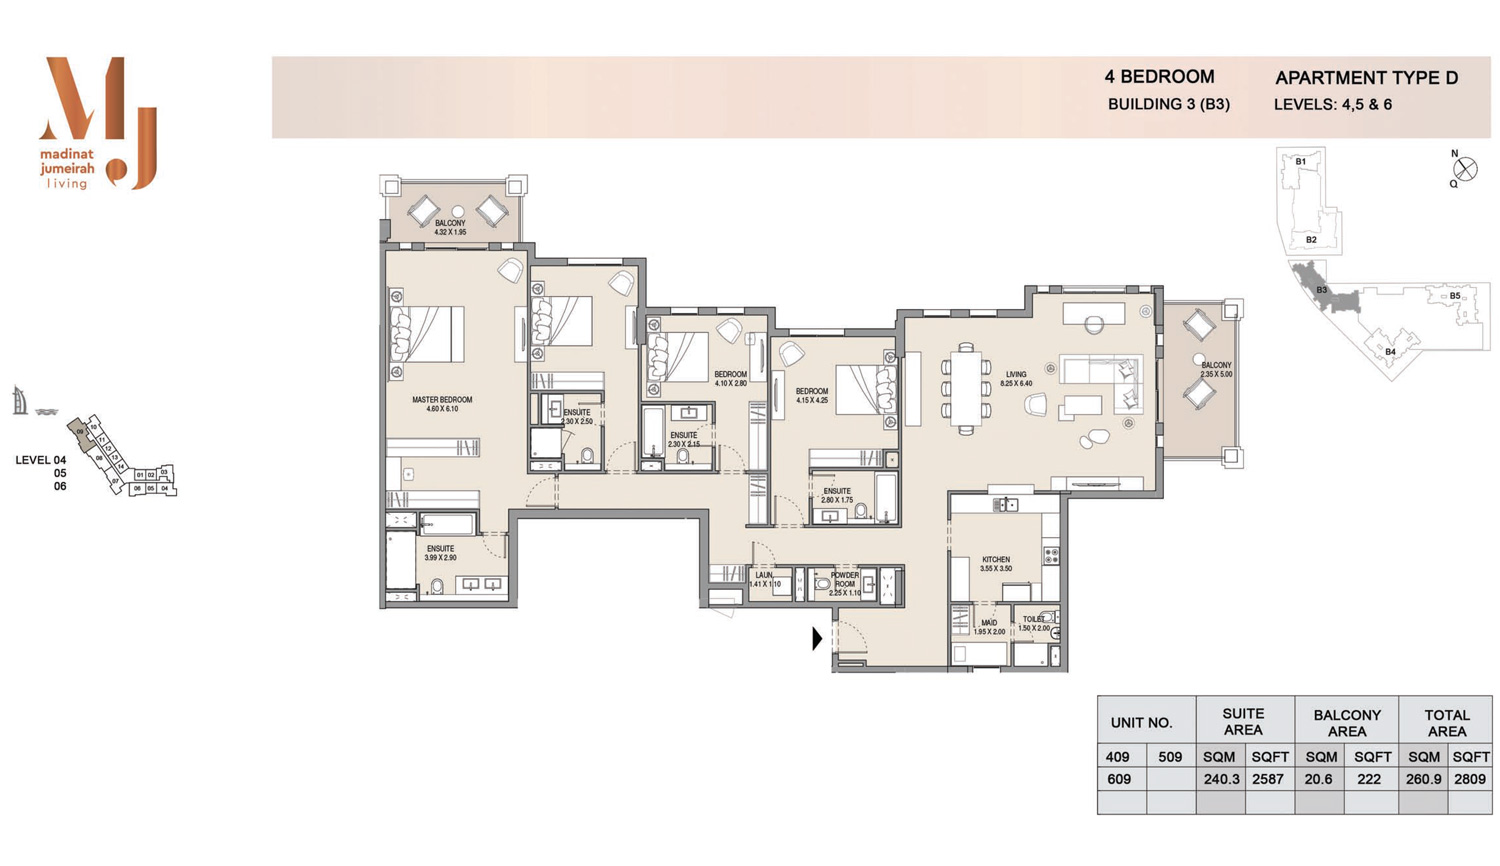 Building3 4 Bedroom, Type D, Levels 4 to 6, Size 2809 sq.ft